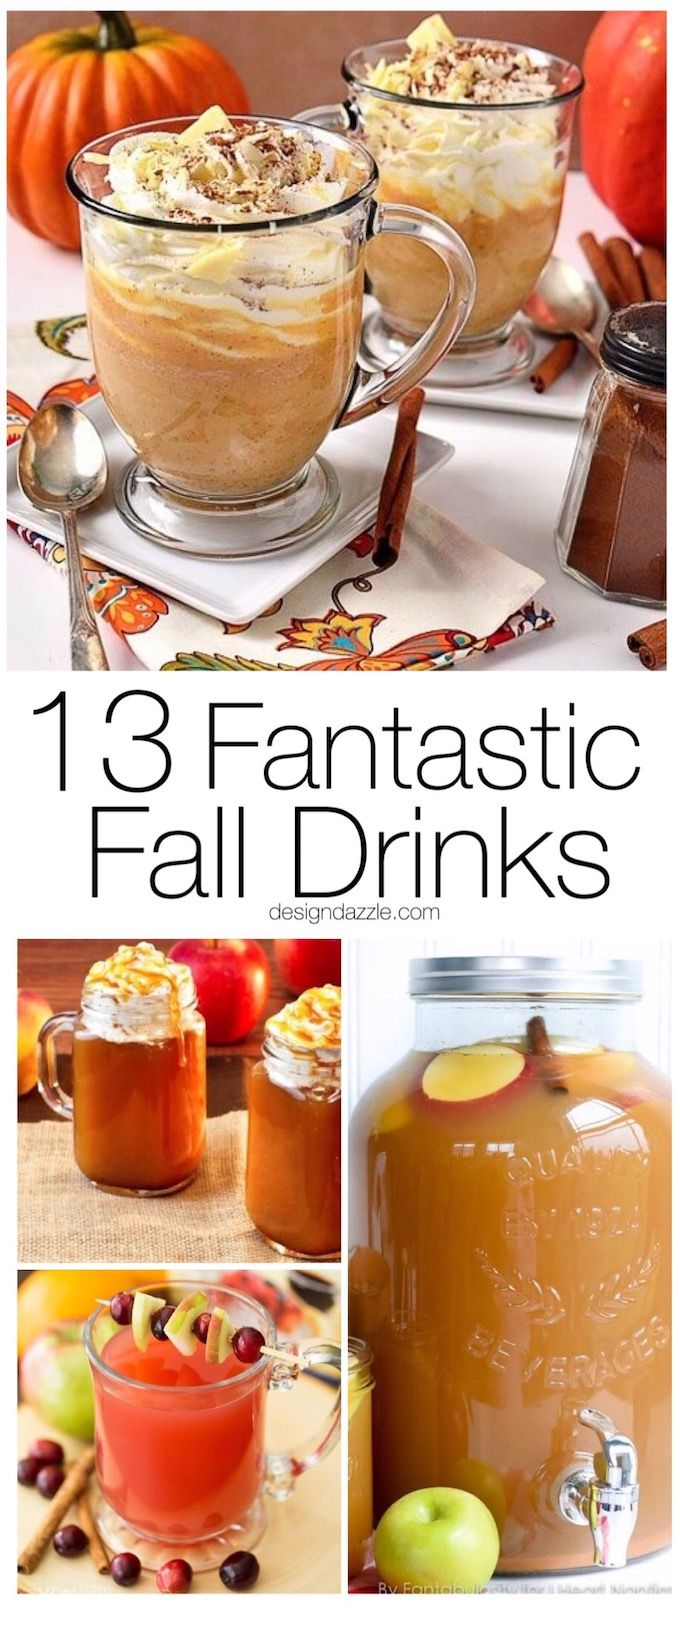 13 Fantastic Fall Drinks - Design Dazzle